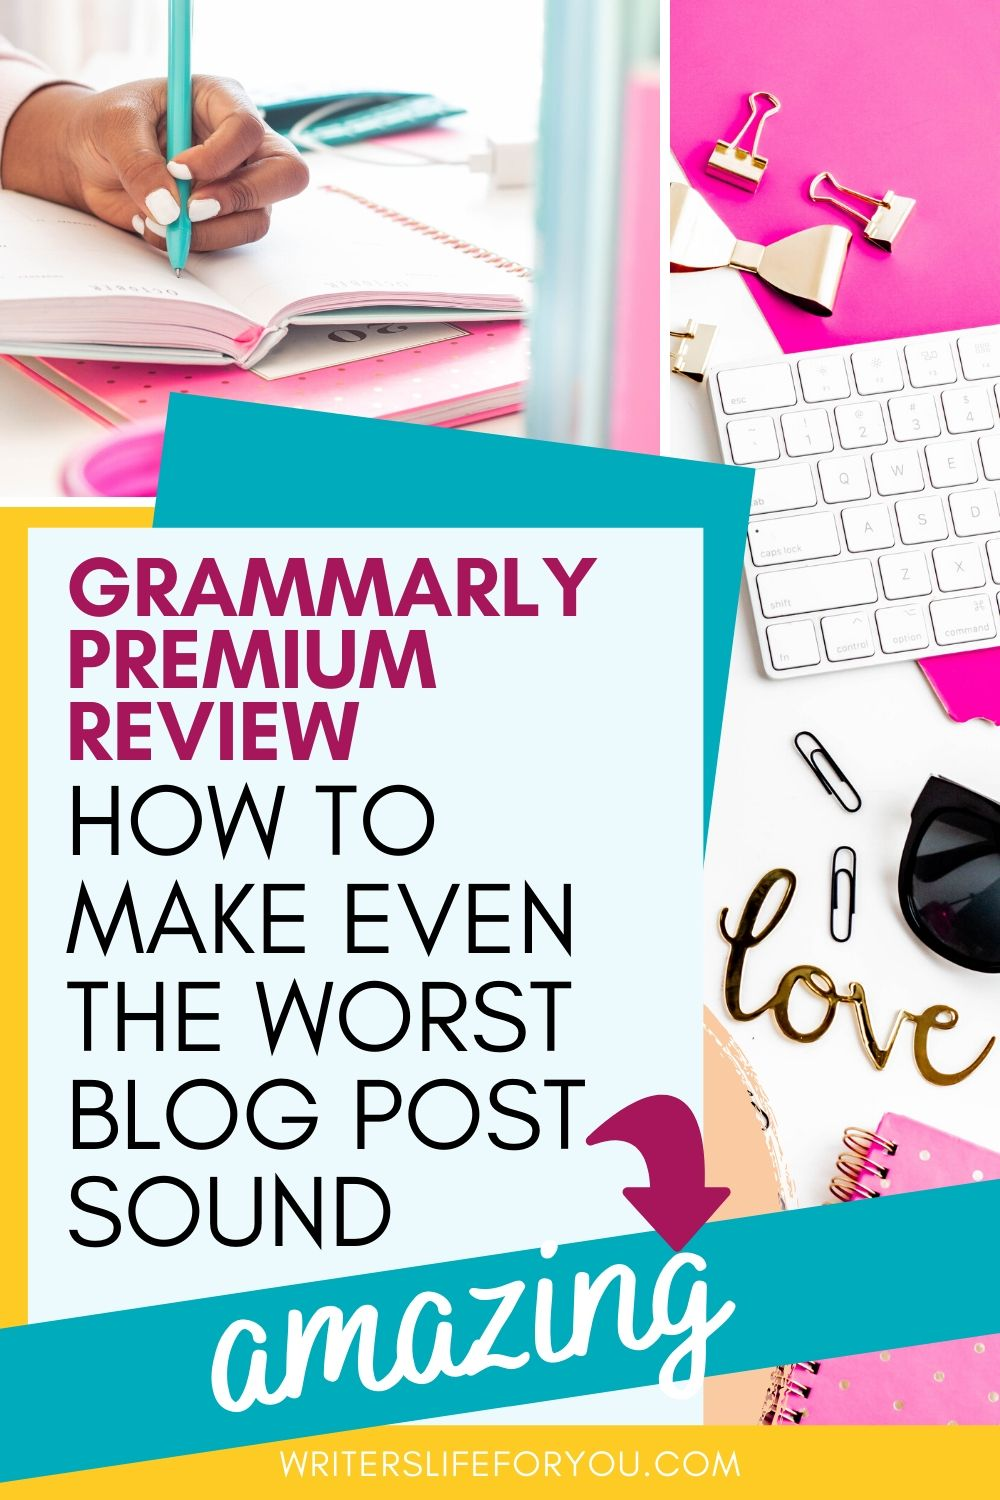 Grammarly Premium Review: Write Better Blog Posts With Ease